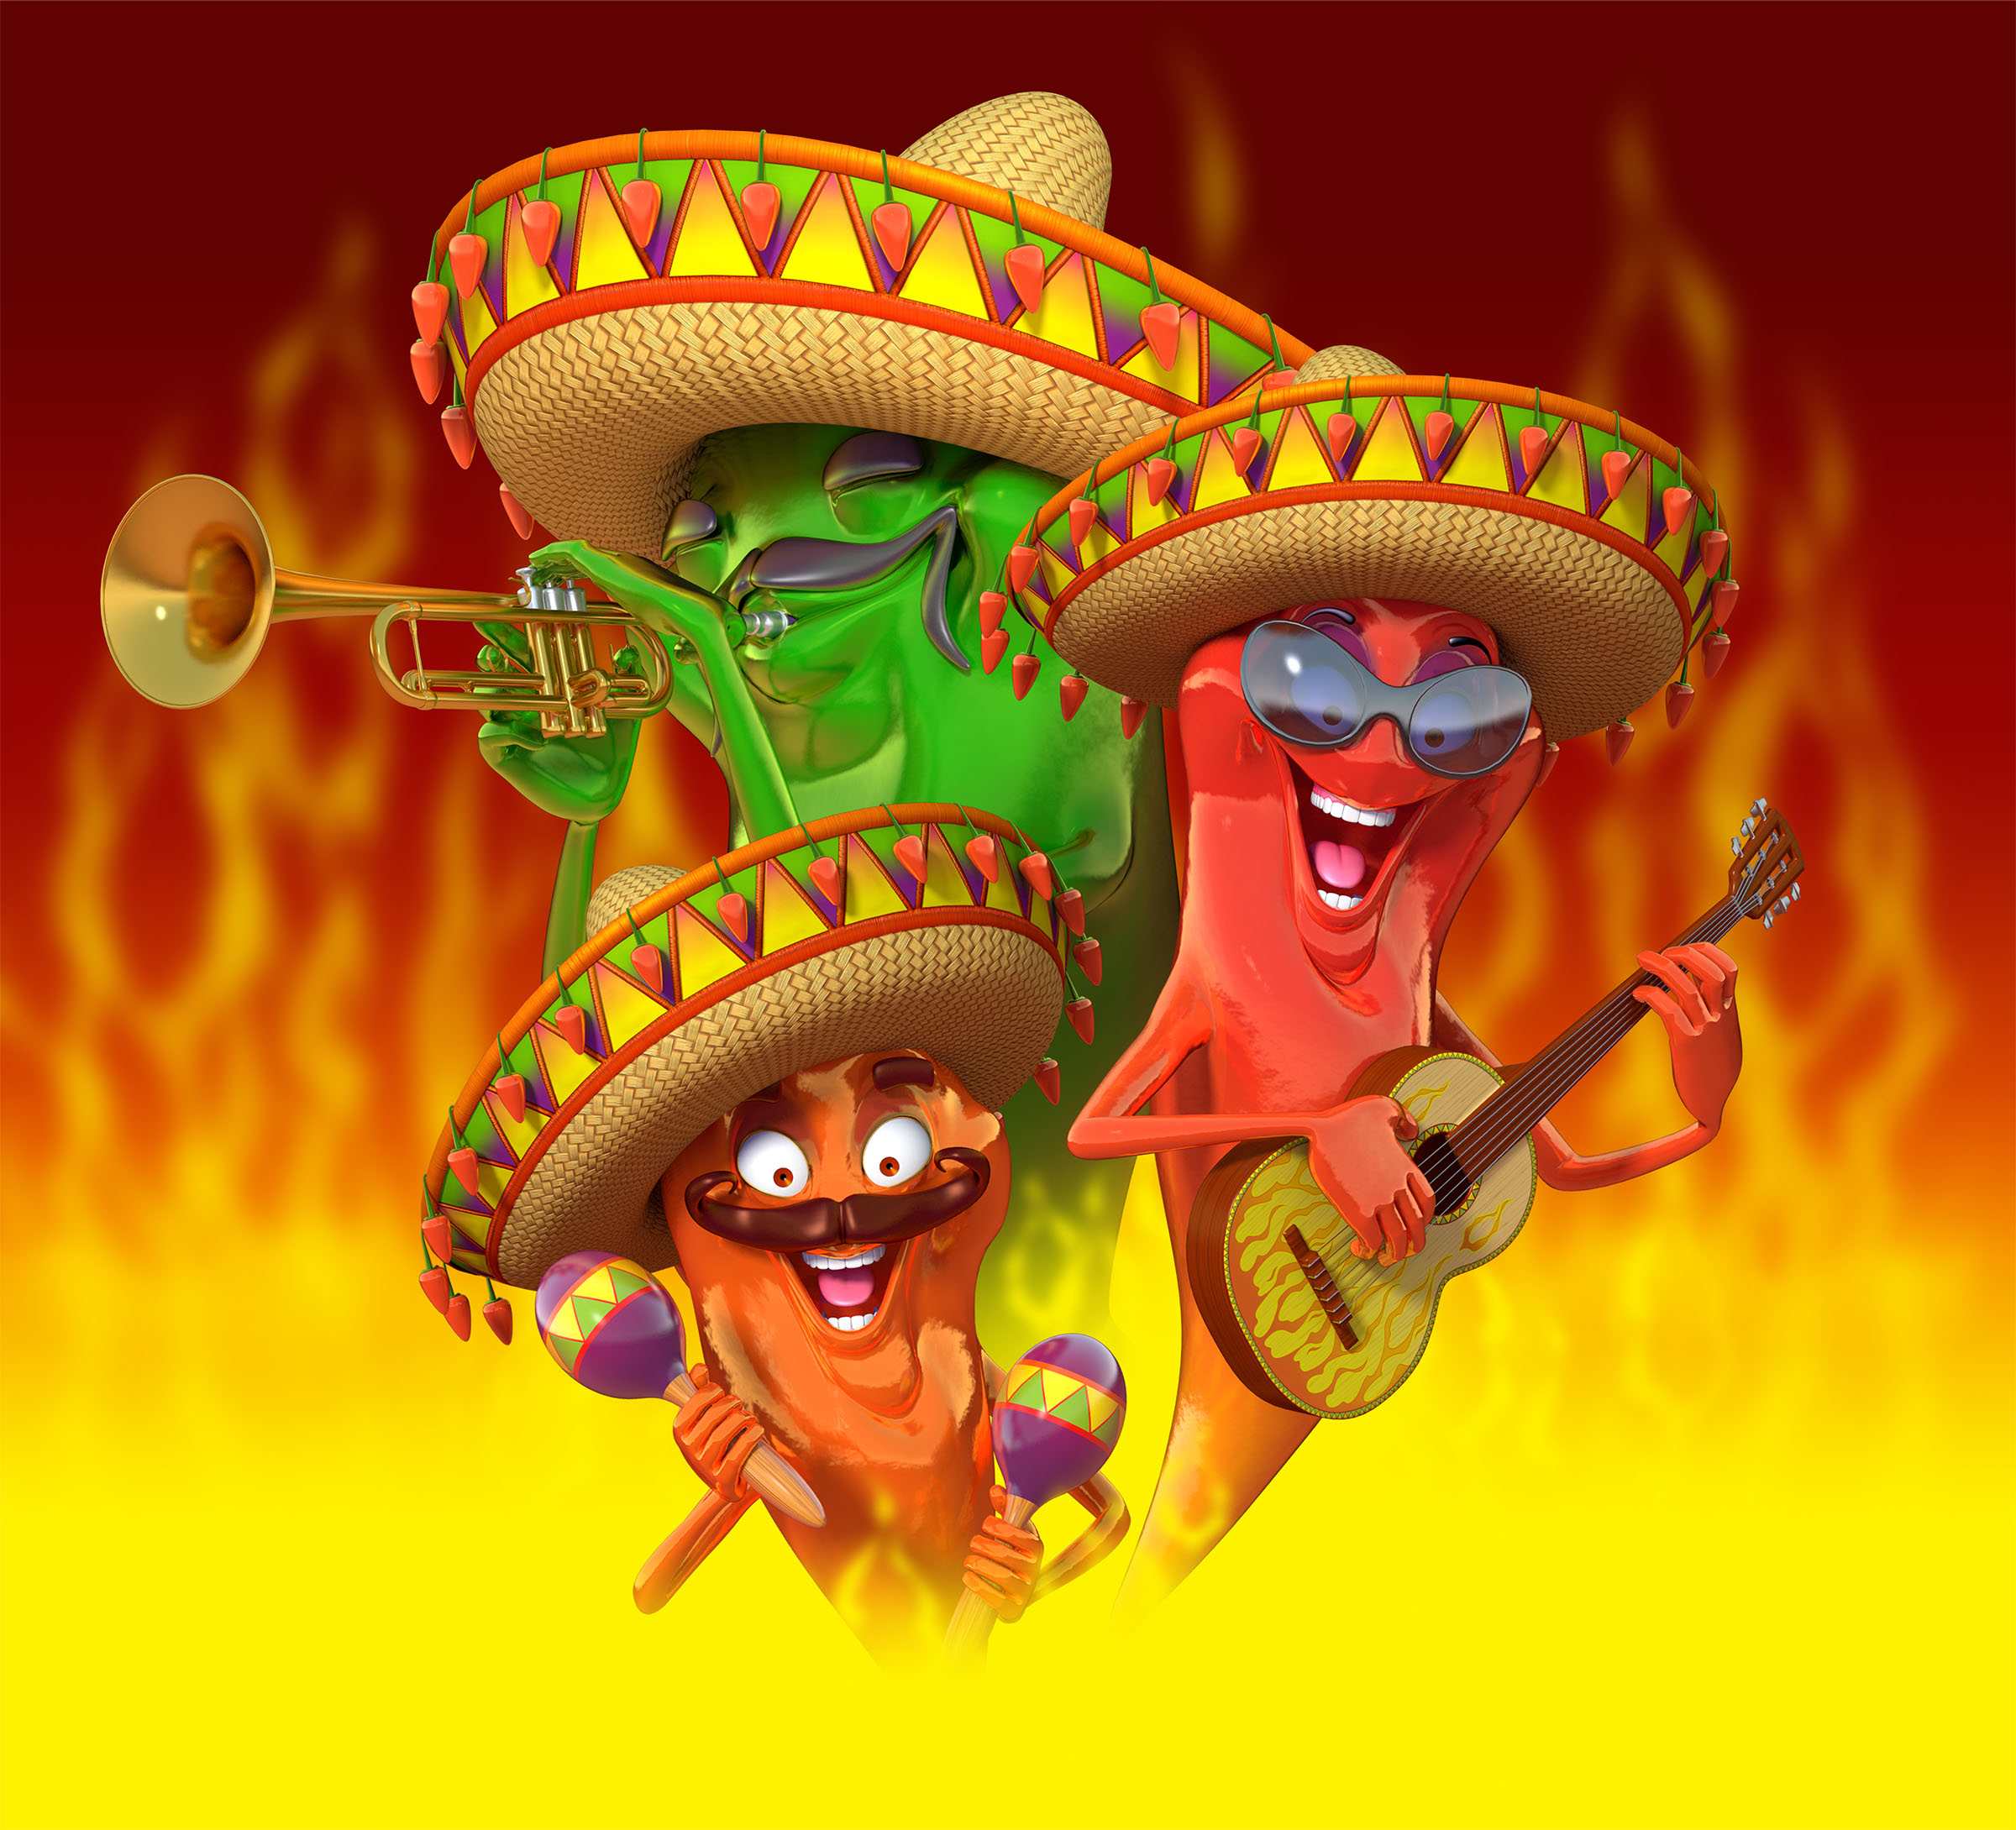 Mariachi_Peppers-ART